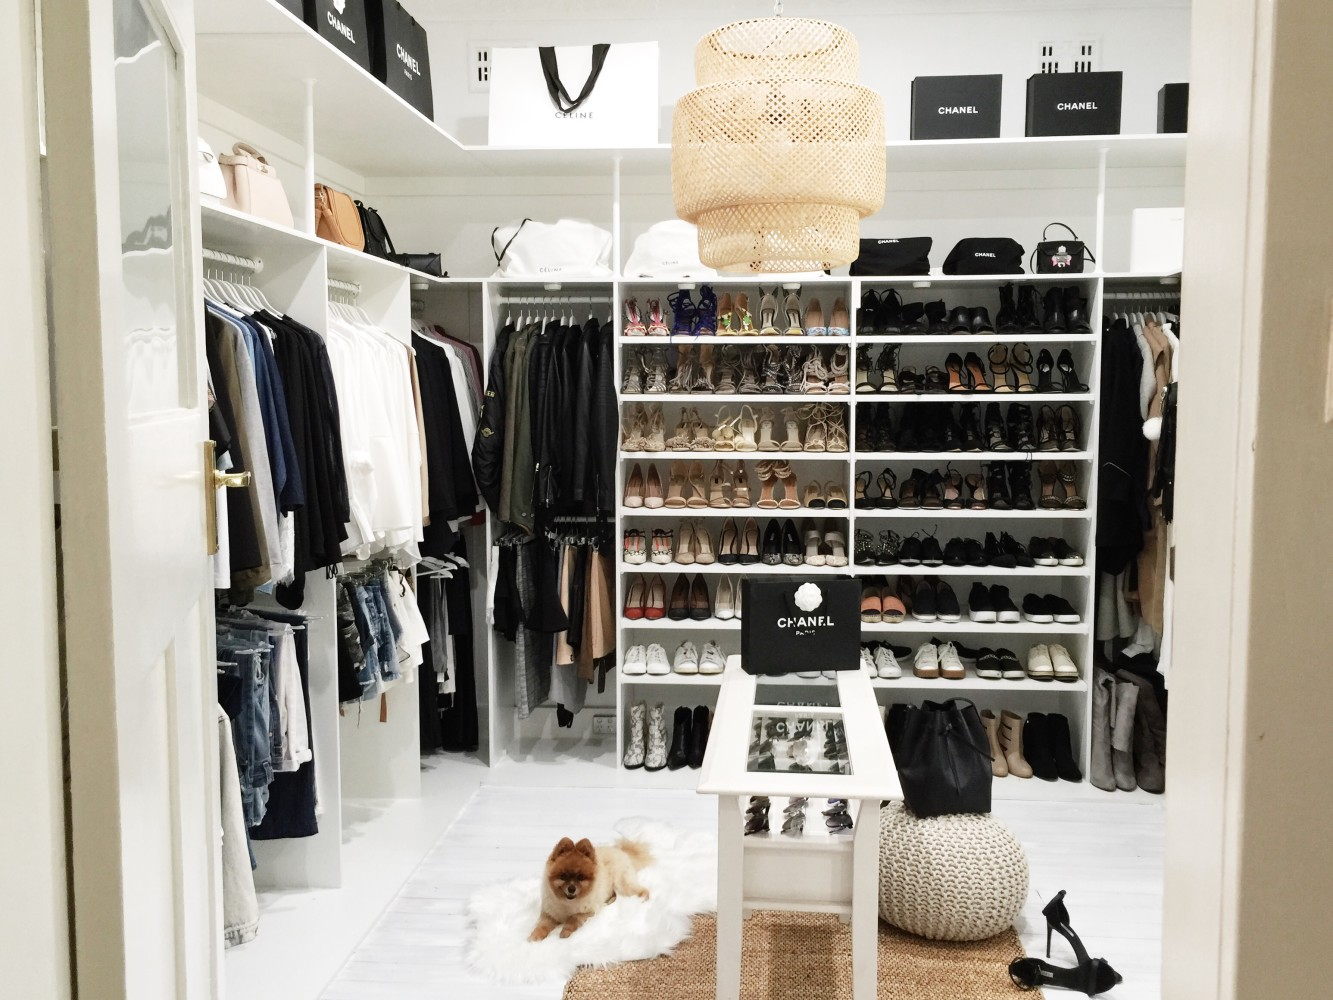 How to create your own dream walk-in wardrobe